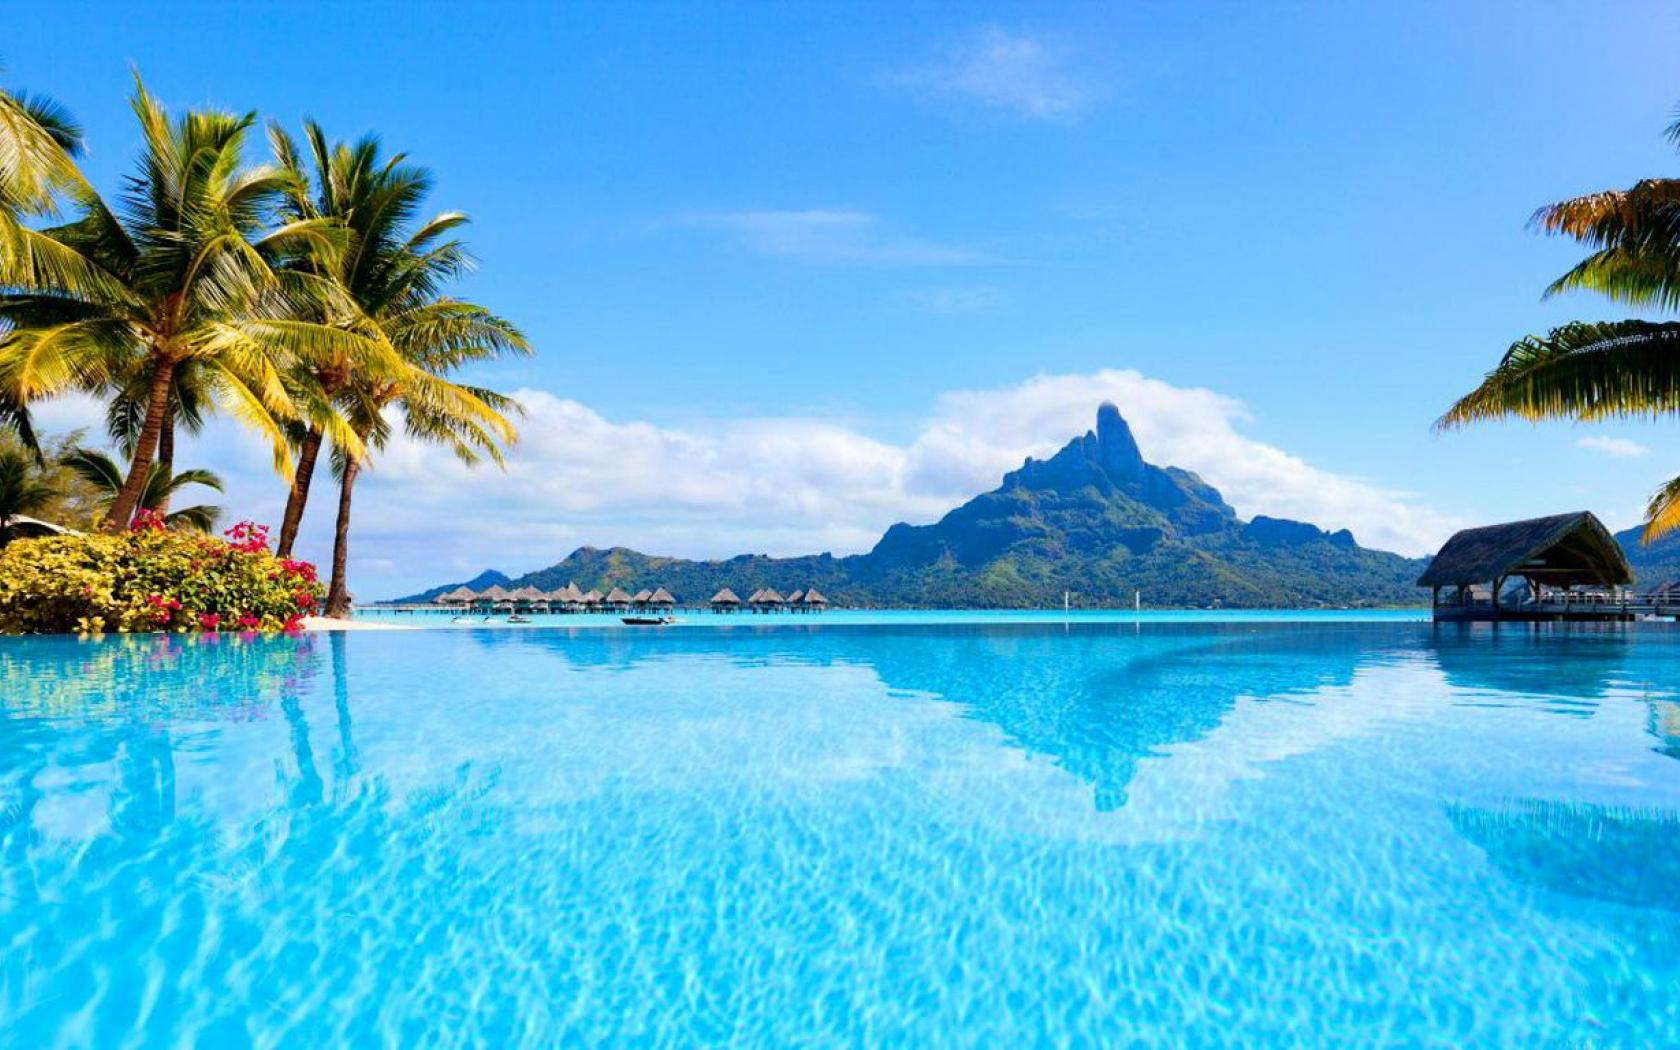 bora bora   107891   High Quality and Resolution Wallpapers 1680x1050